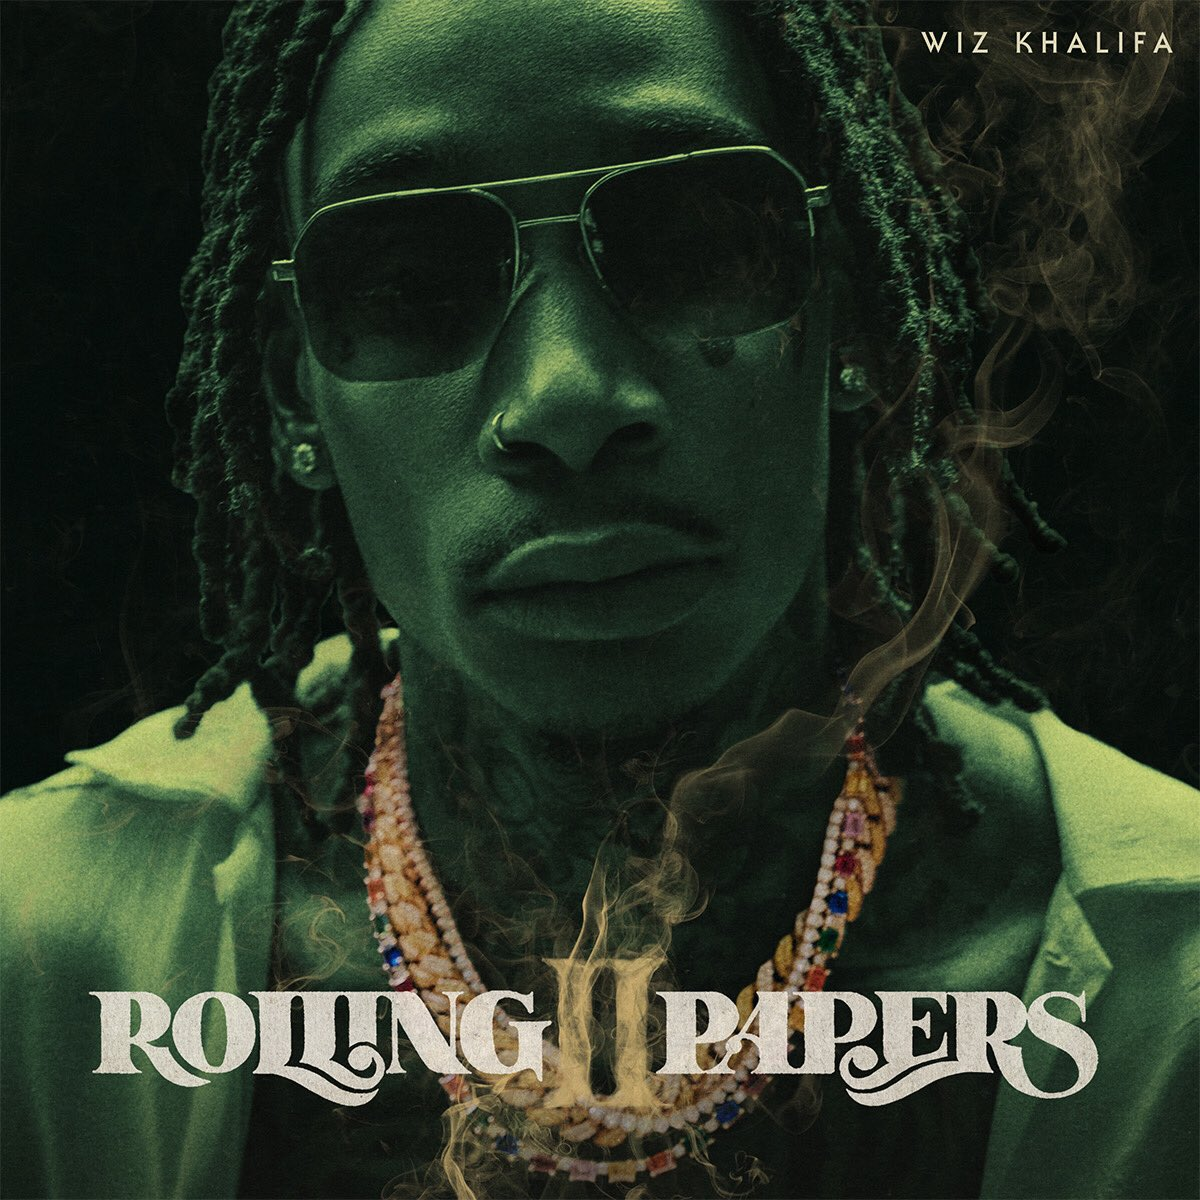 THE WAIT IS OVER. @WIZKHALIFA #ROLLINGPAPERS2 IS NOW AVAILABLE EVERYWHERE‼️🐉 Wiz.lnk.to/RP2 #TGOD